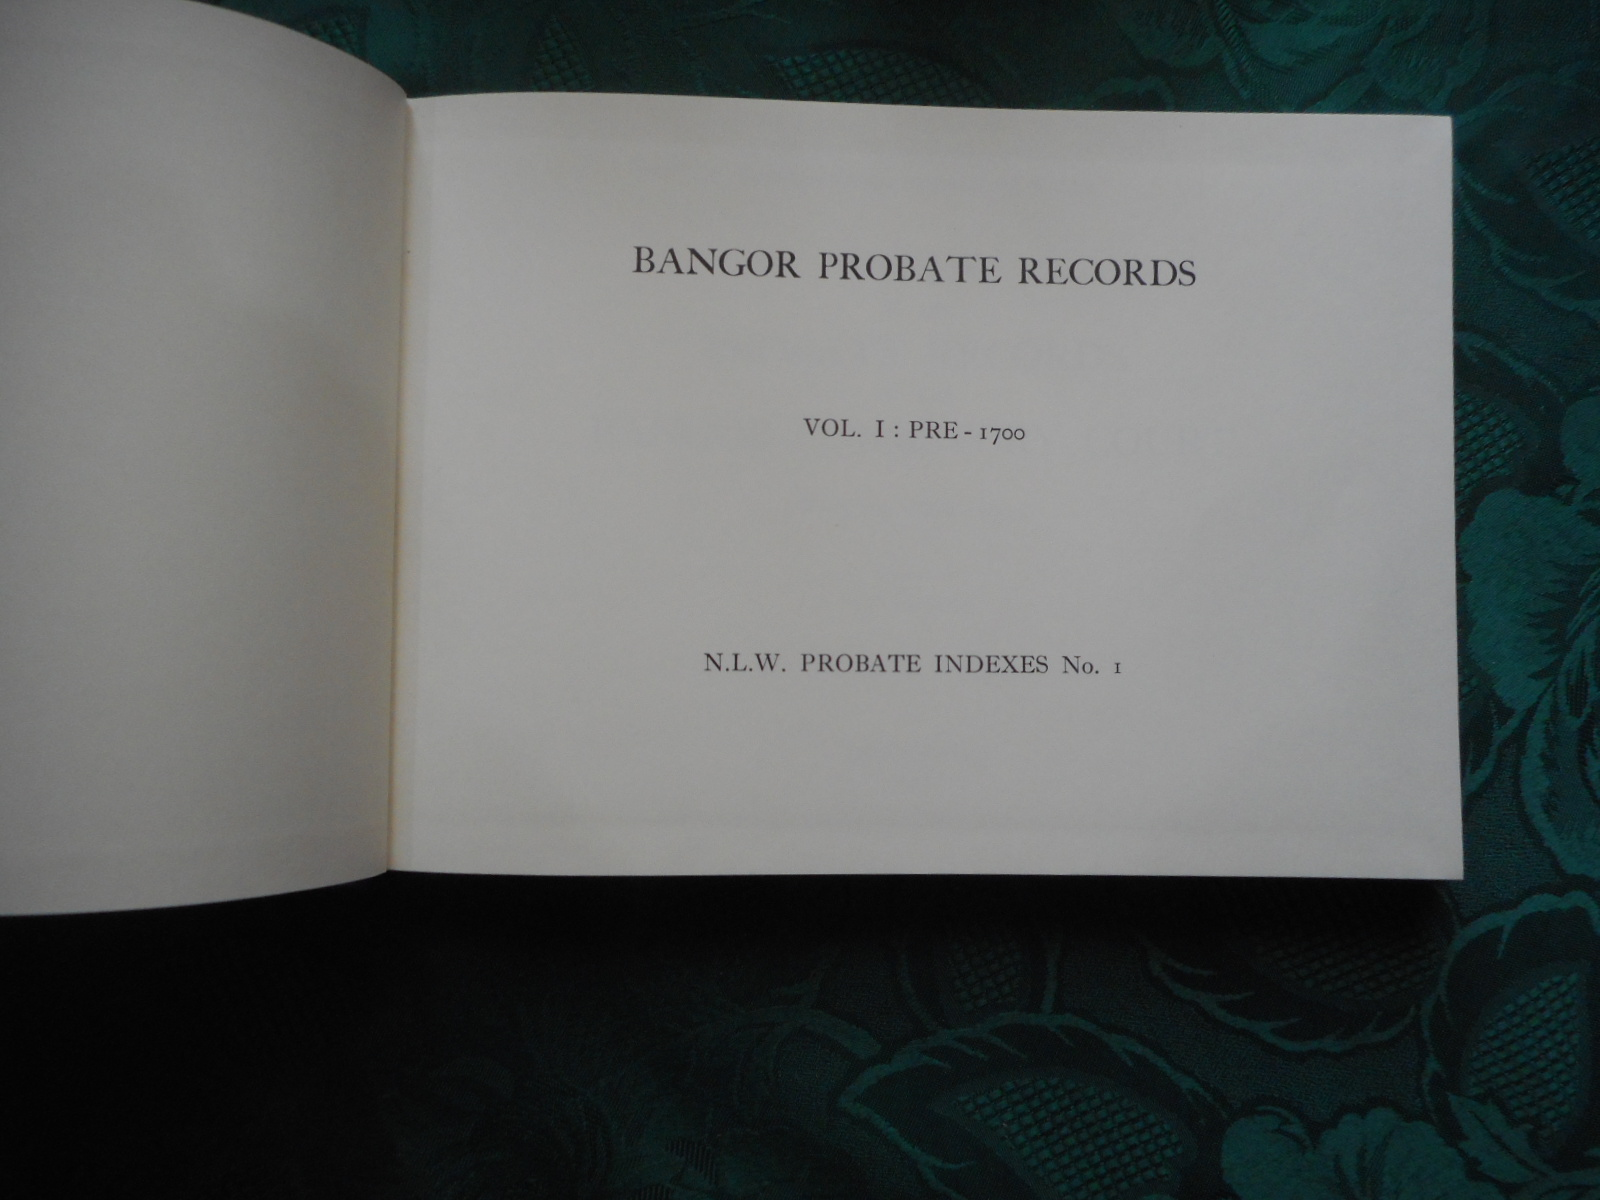 Image for Bangor Probate Records Volume I Pre-1700. N. L. W. Probate Indexes No.1. Index of the Probate Records of the Bangor Consistory Court, Vol. I: Pre-1700